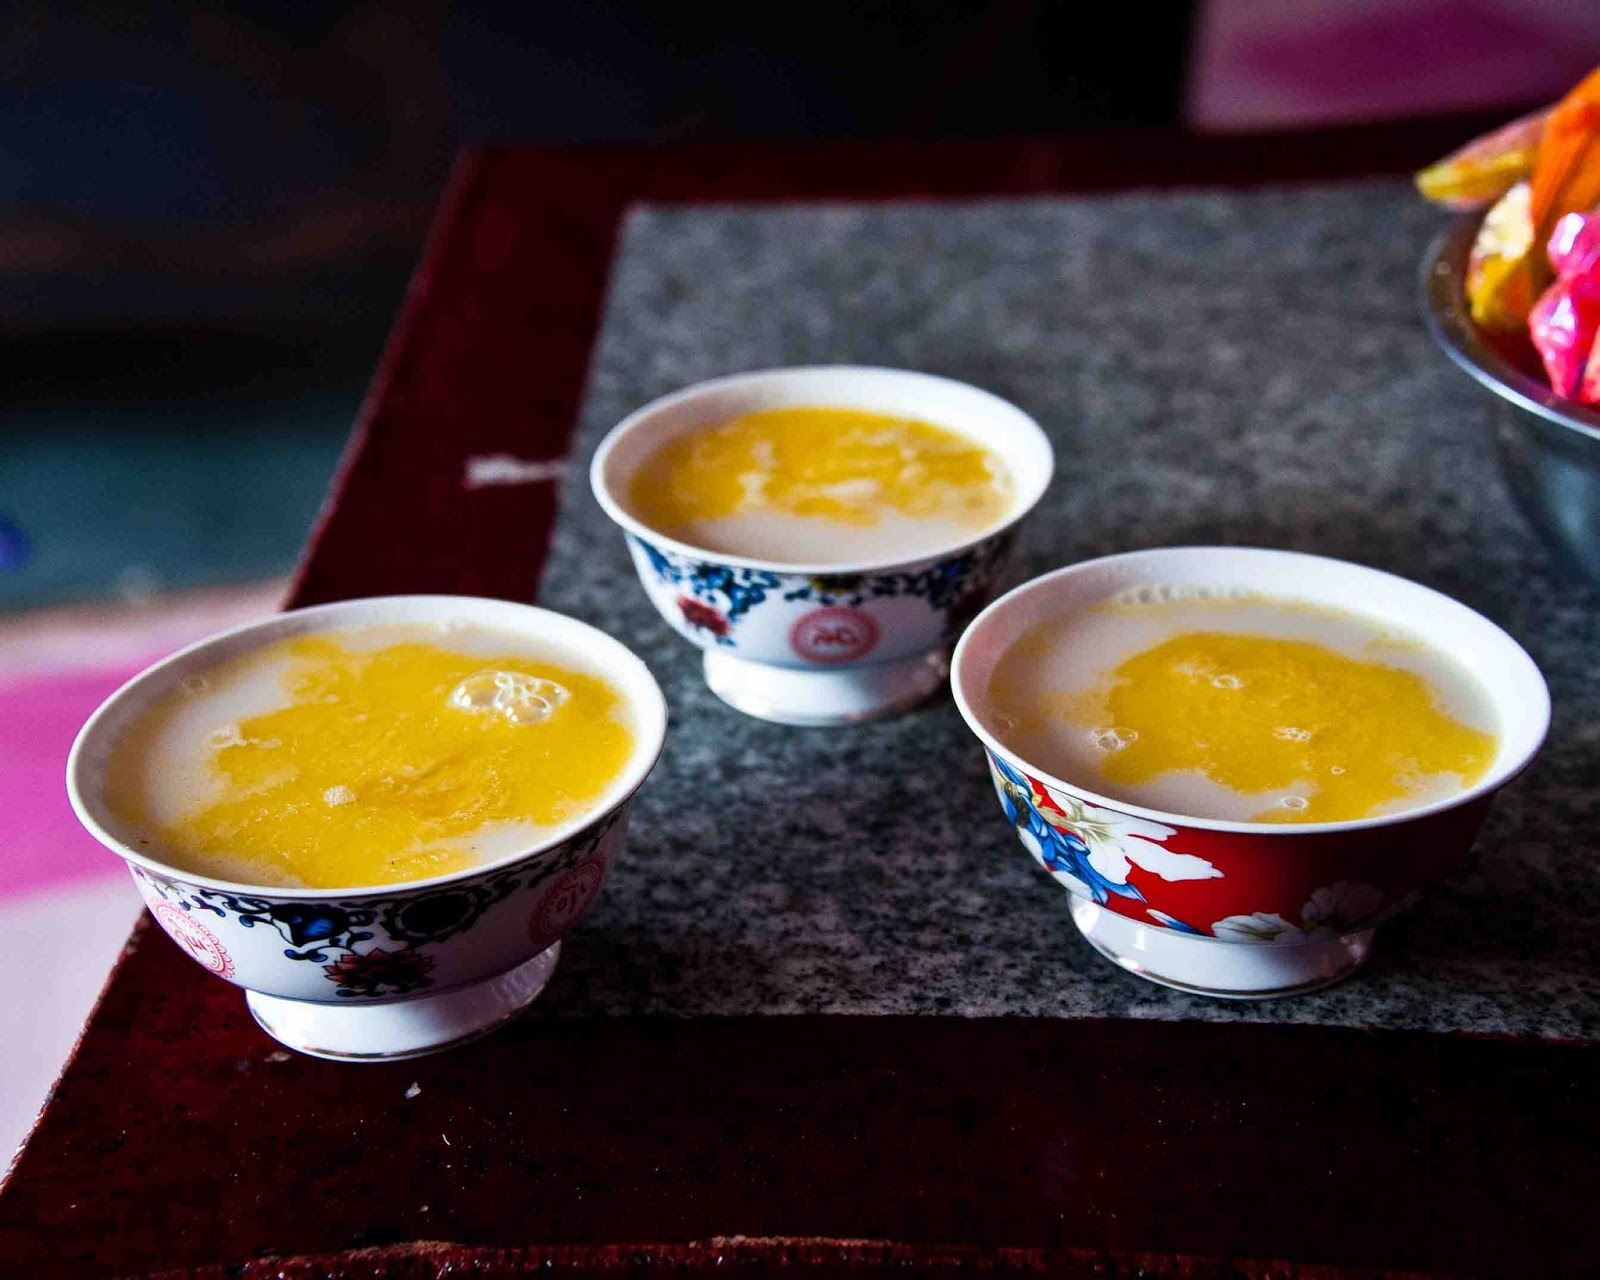 Salty tea with yak butter